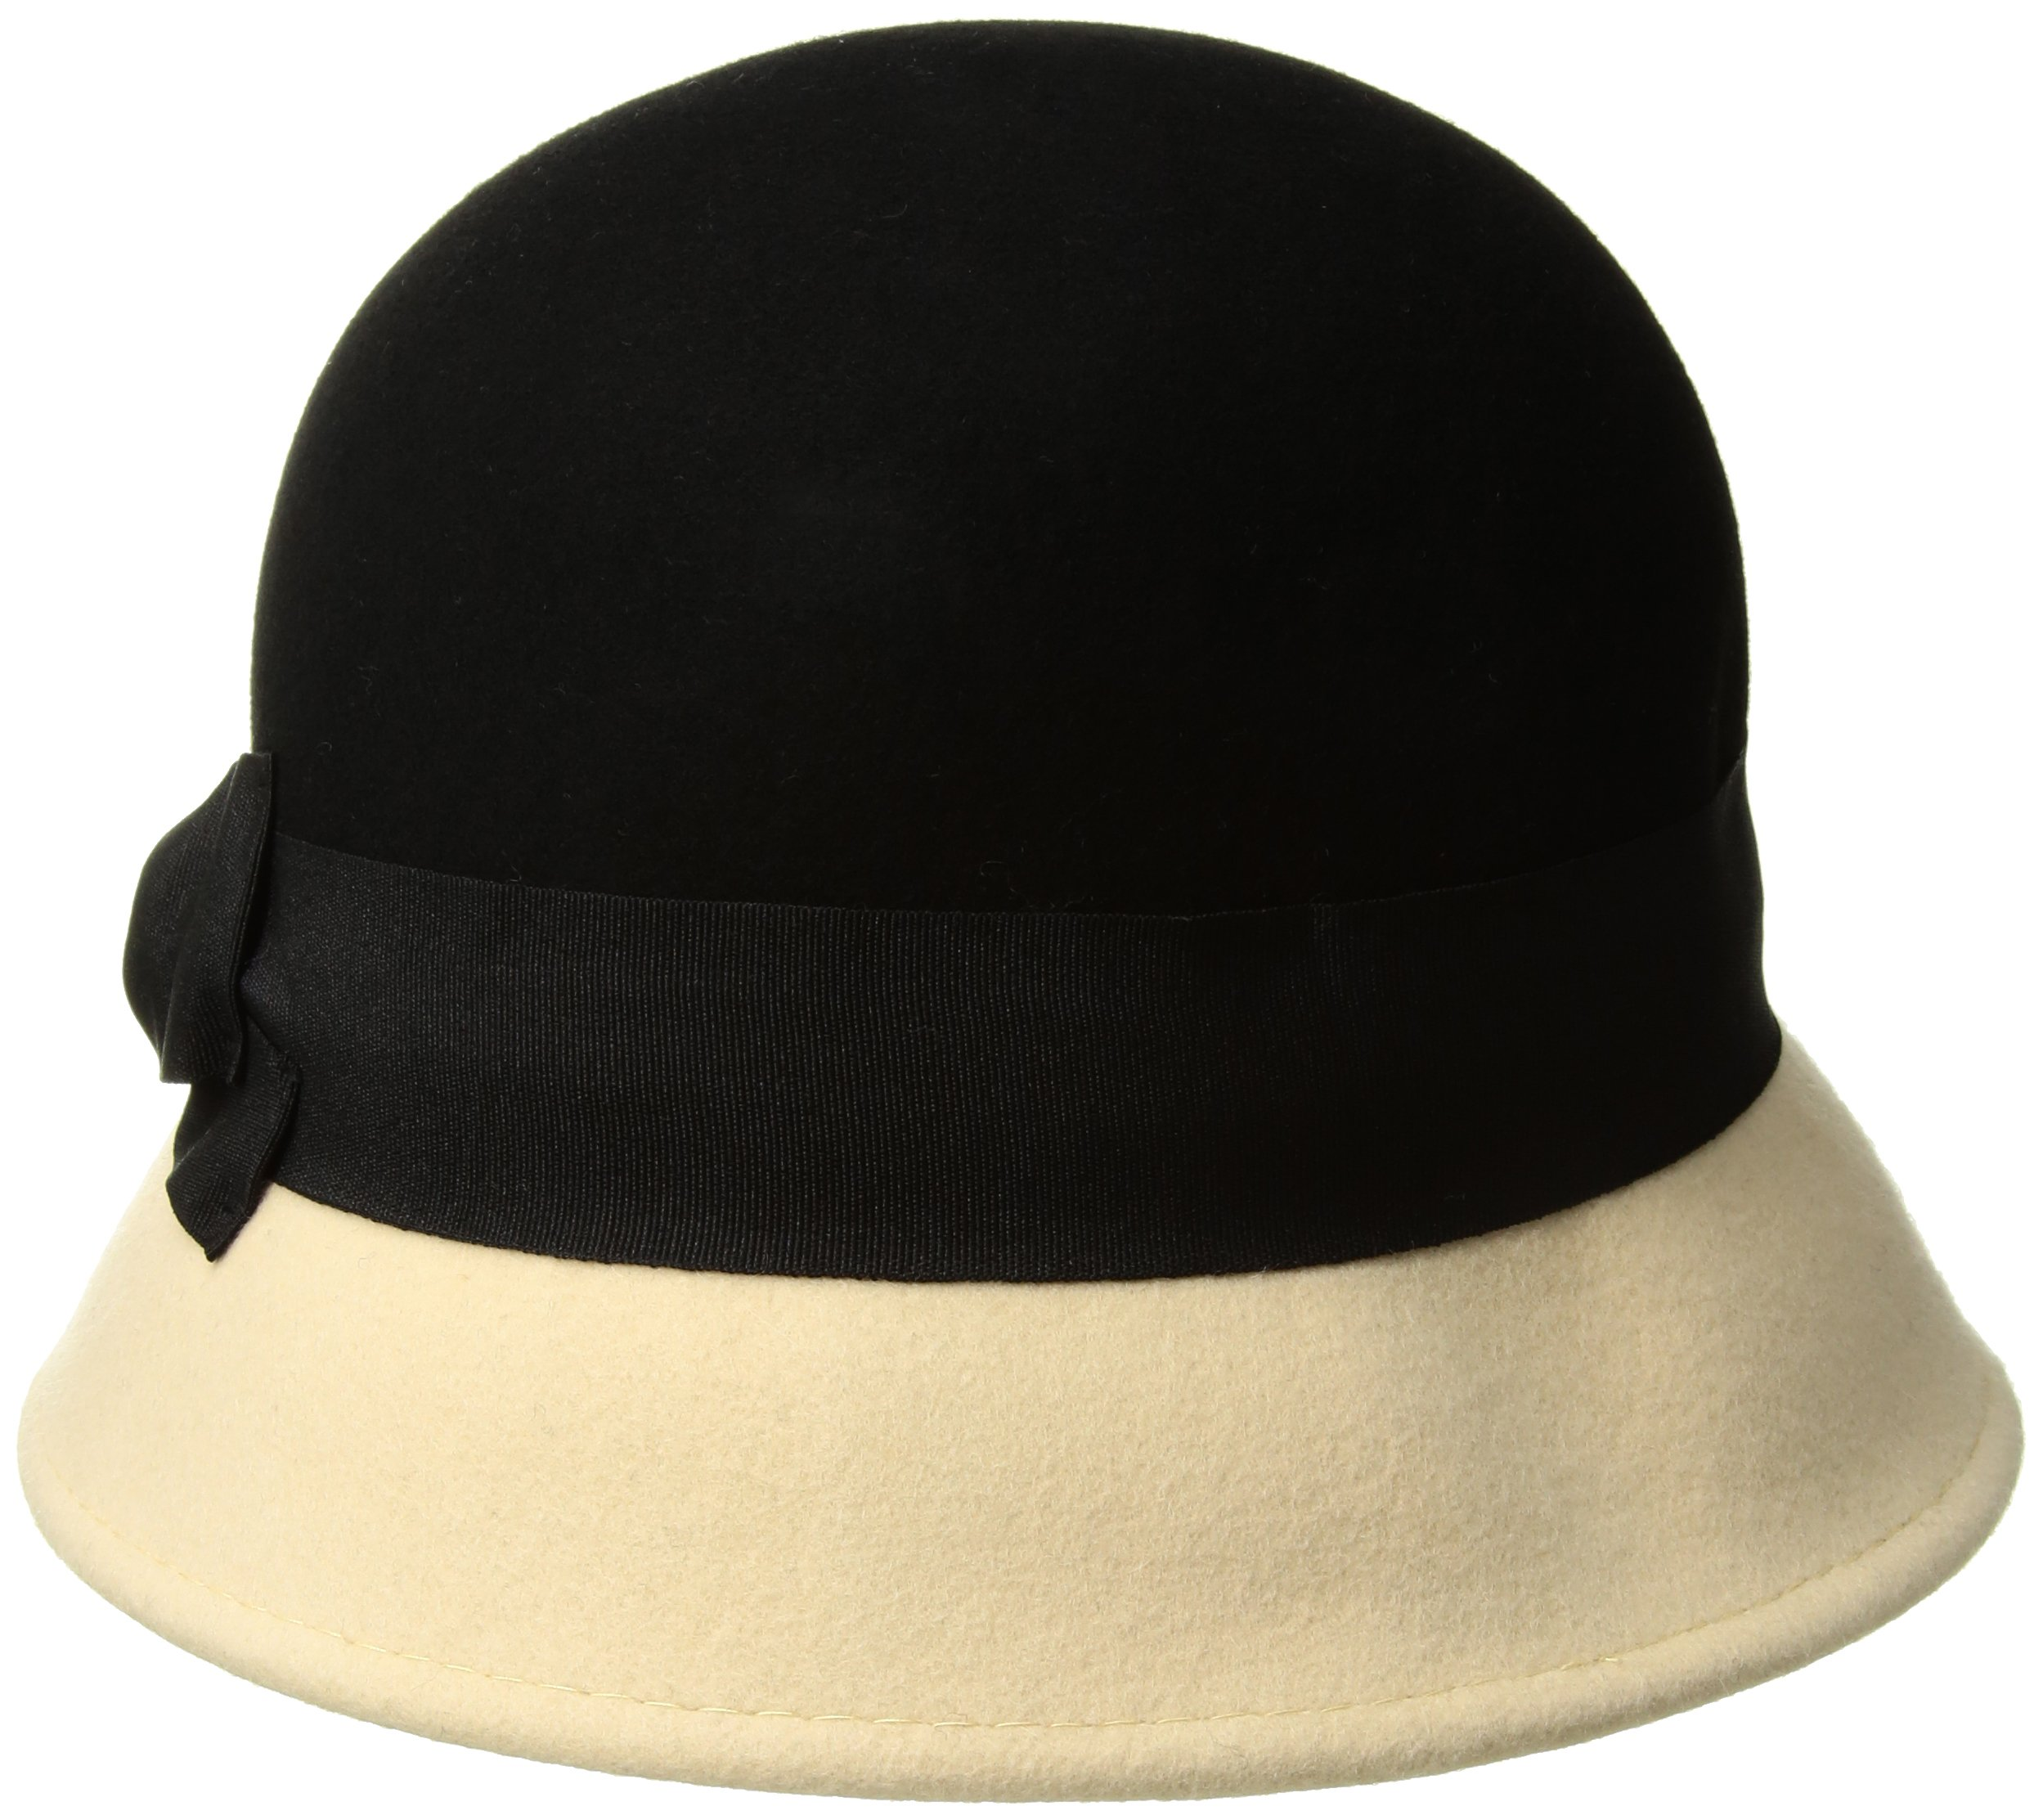 San Diego Hat Company Women's 2 Inch Brim Wool Color Block Cloche Hat with Grossgrain Bow, Black, One Size